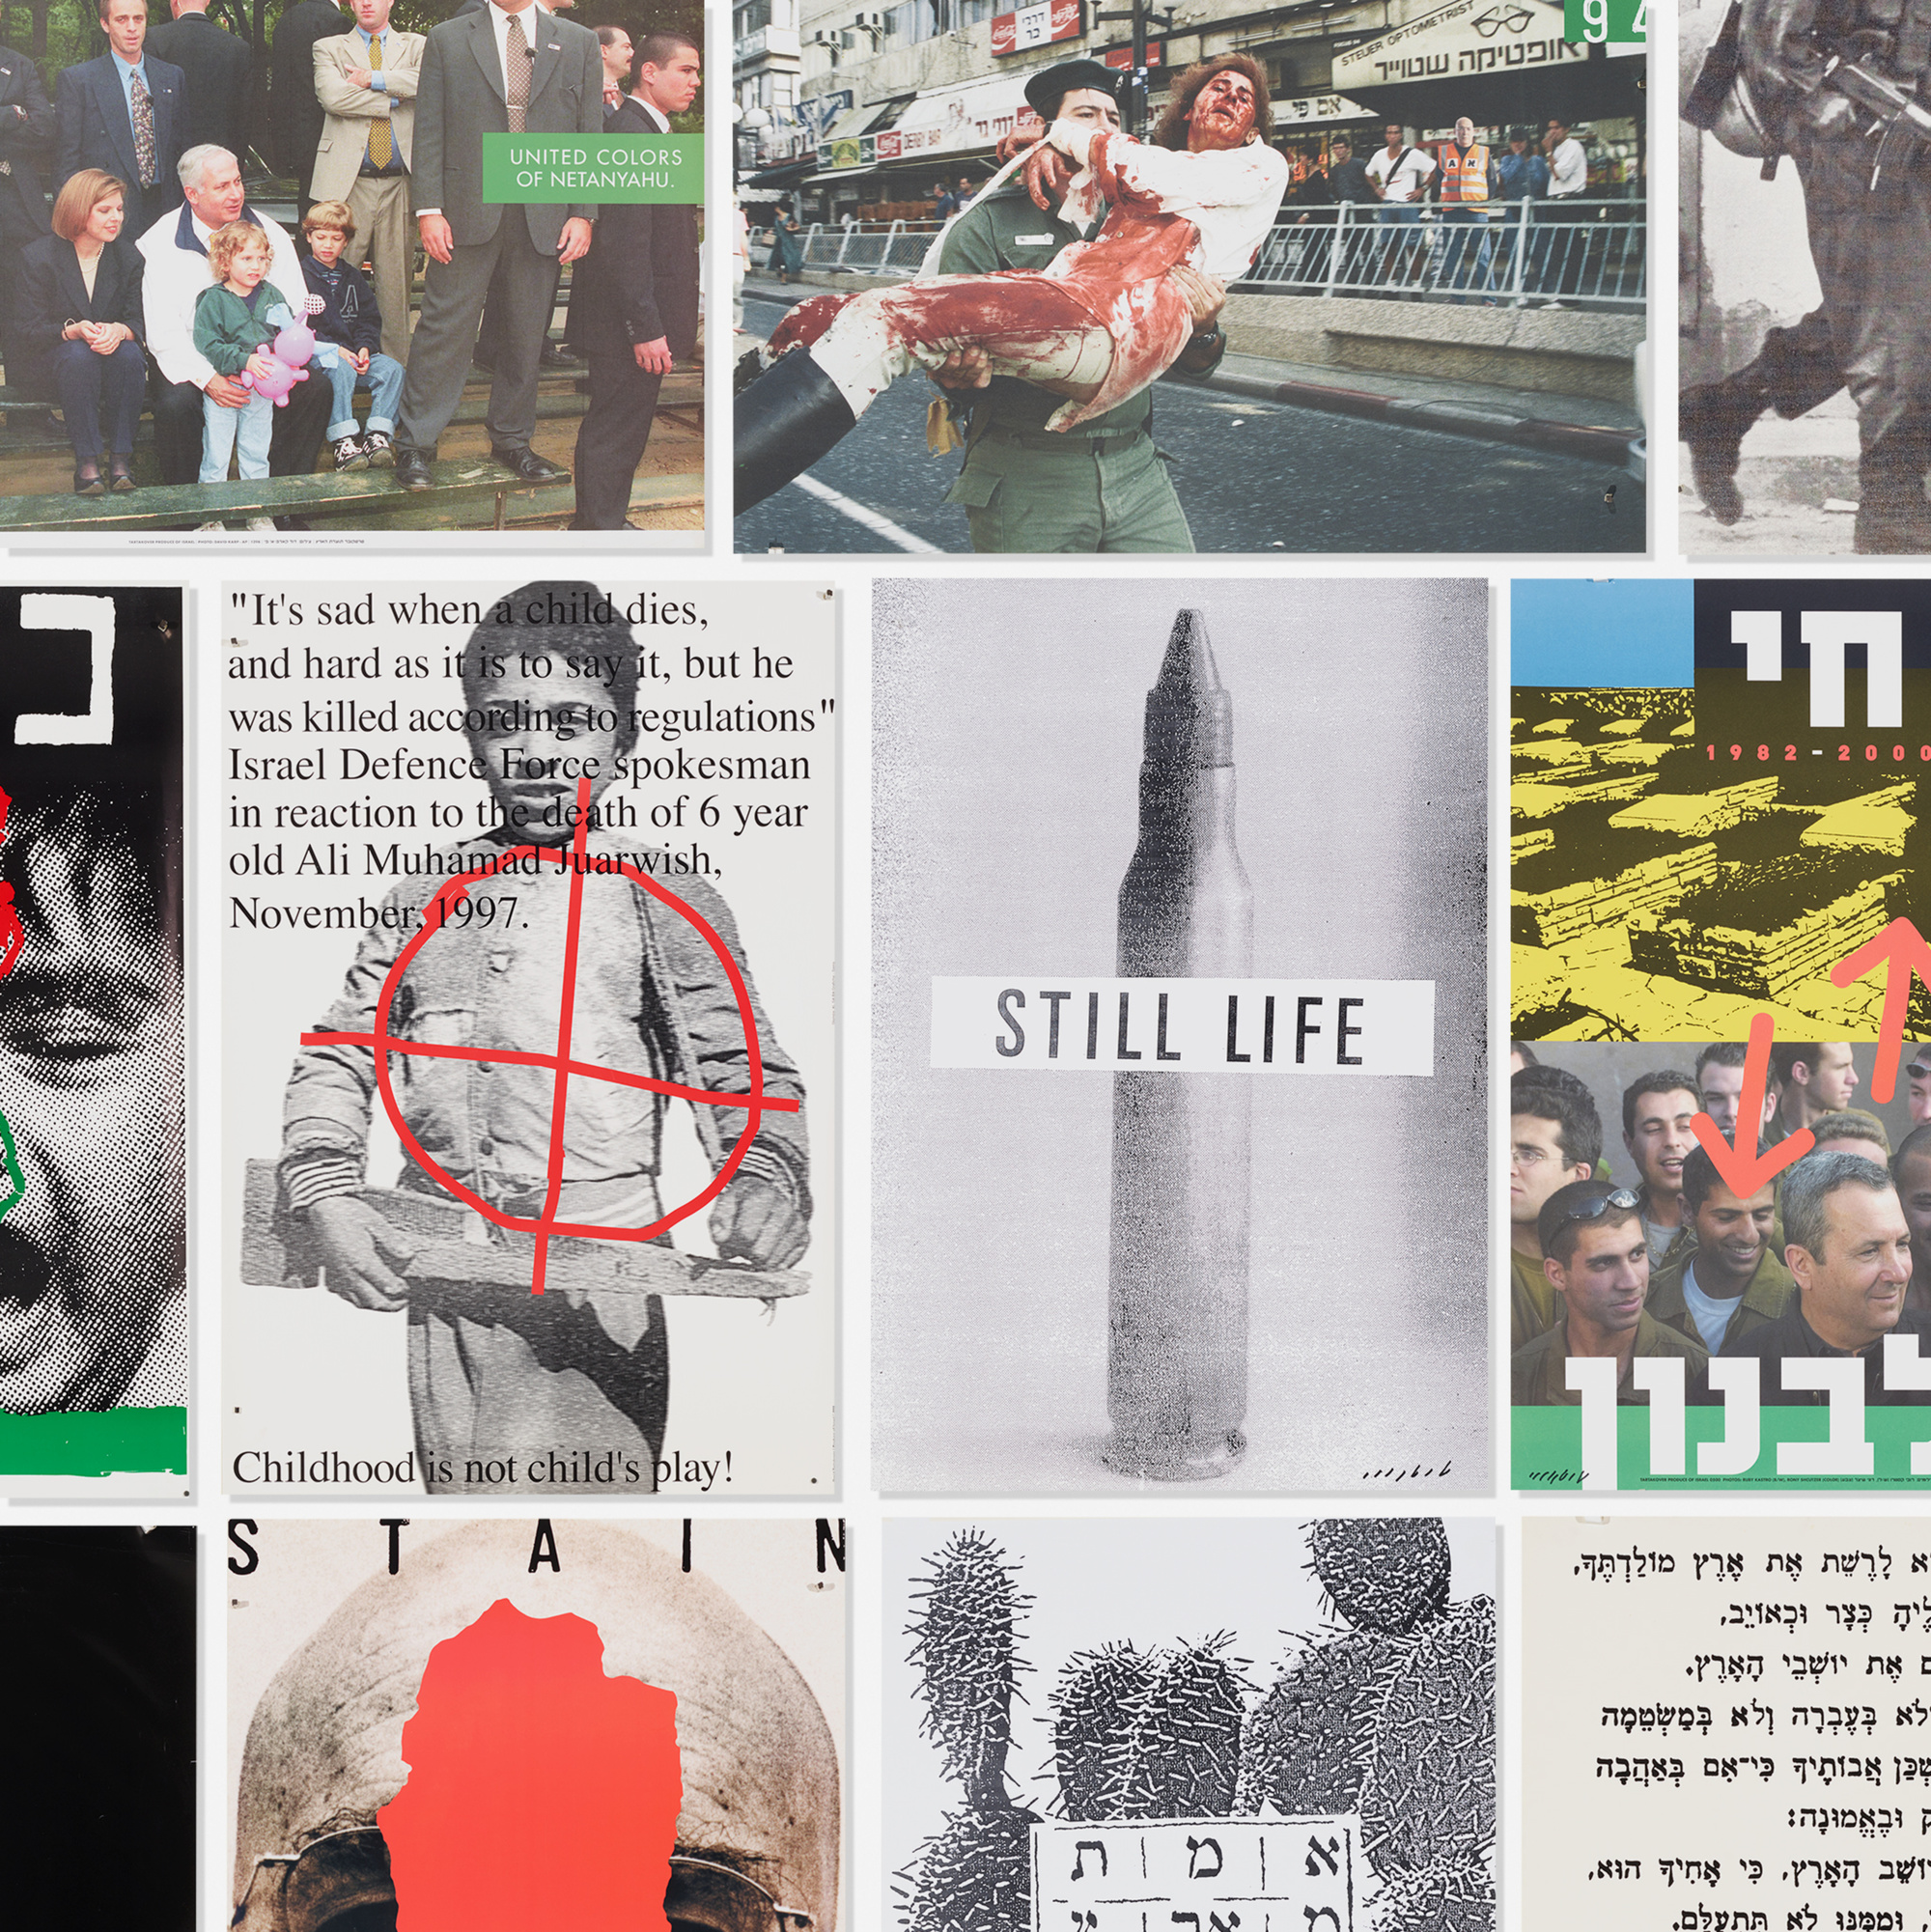 164: David Tartakover / collection of thirty-five political art posters (1 of 1)